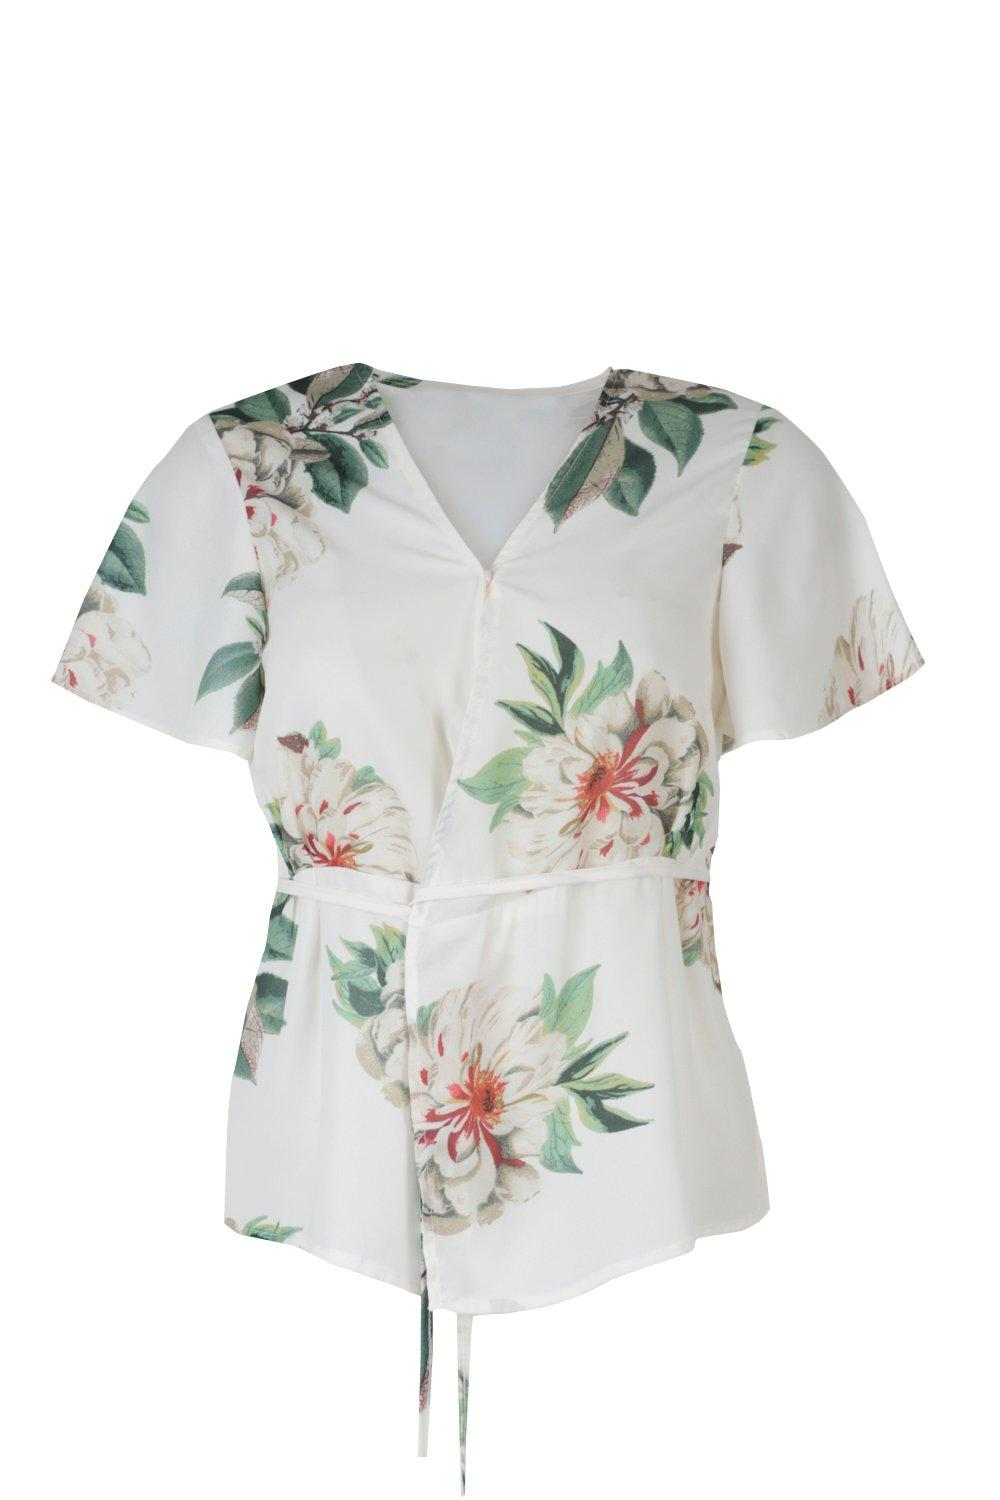 All Together Now Floral Blouse Shop Clothes At Nasty Gal